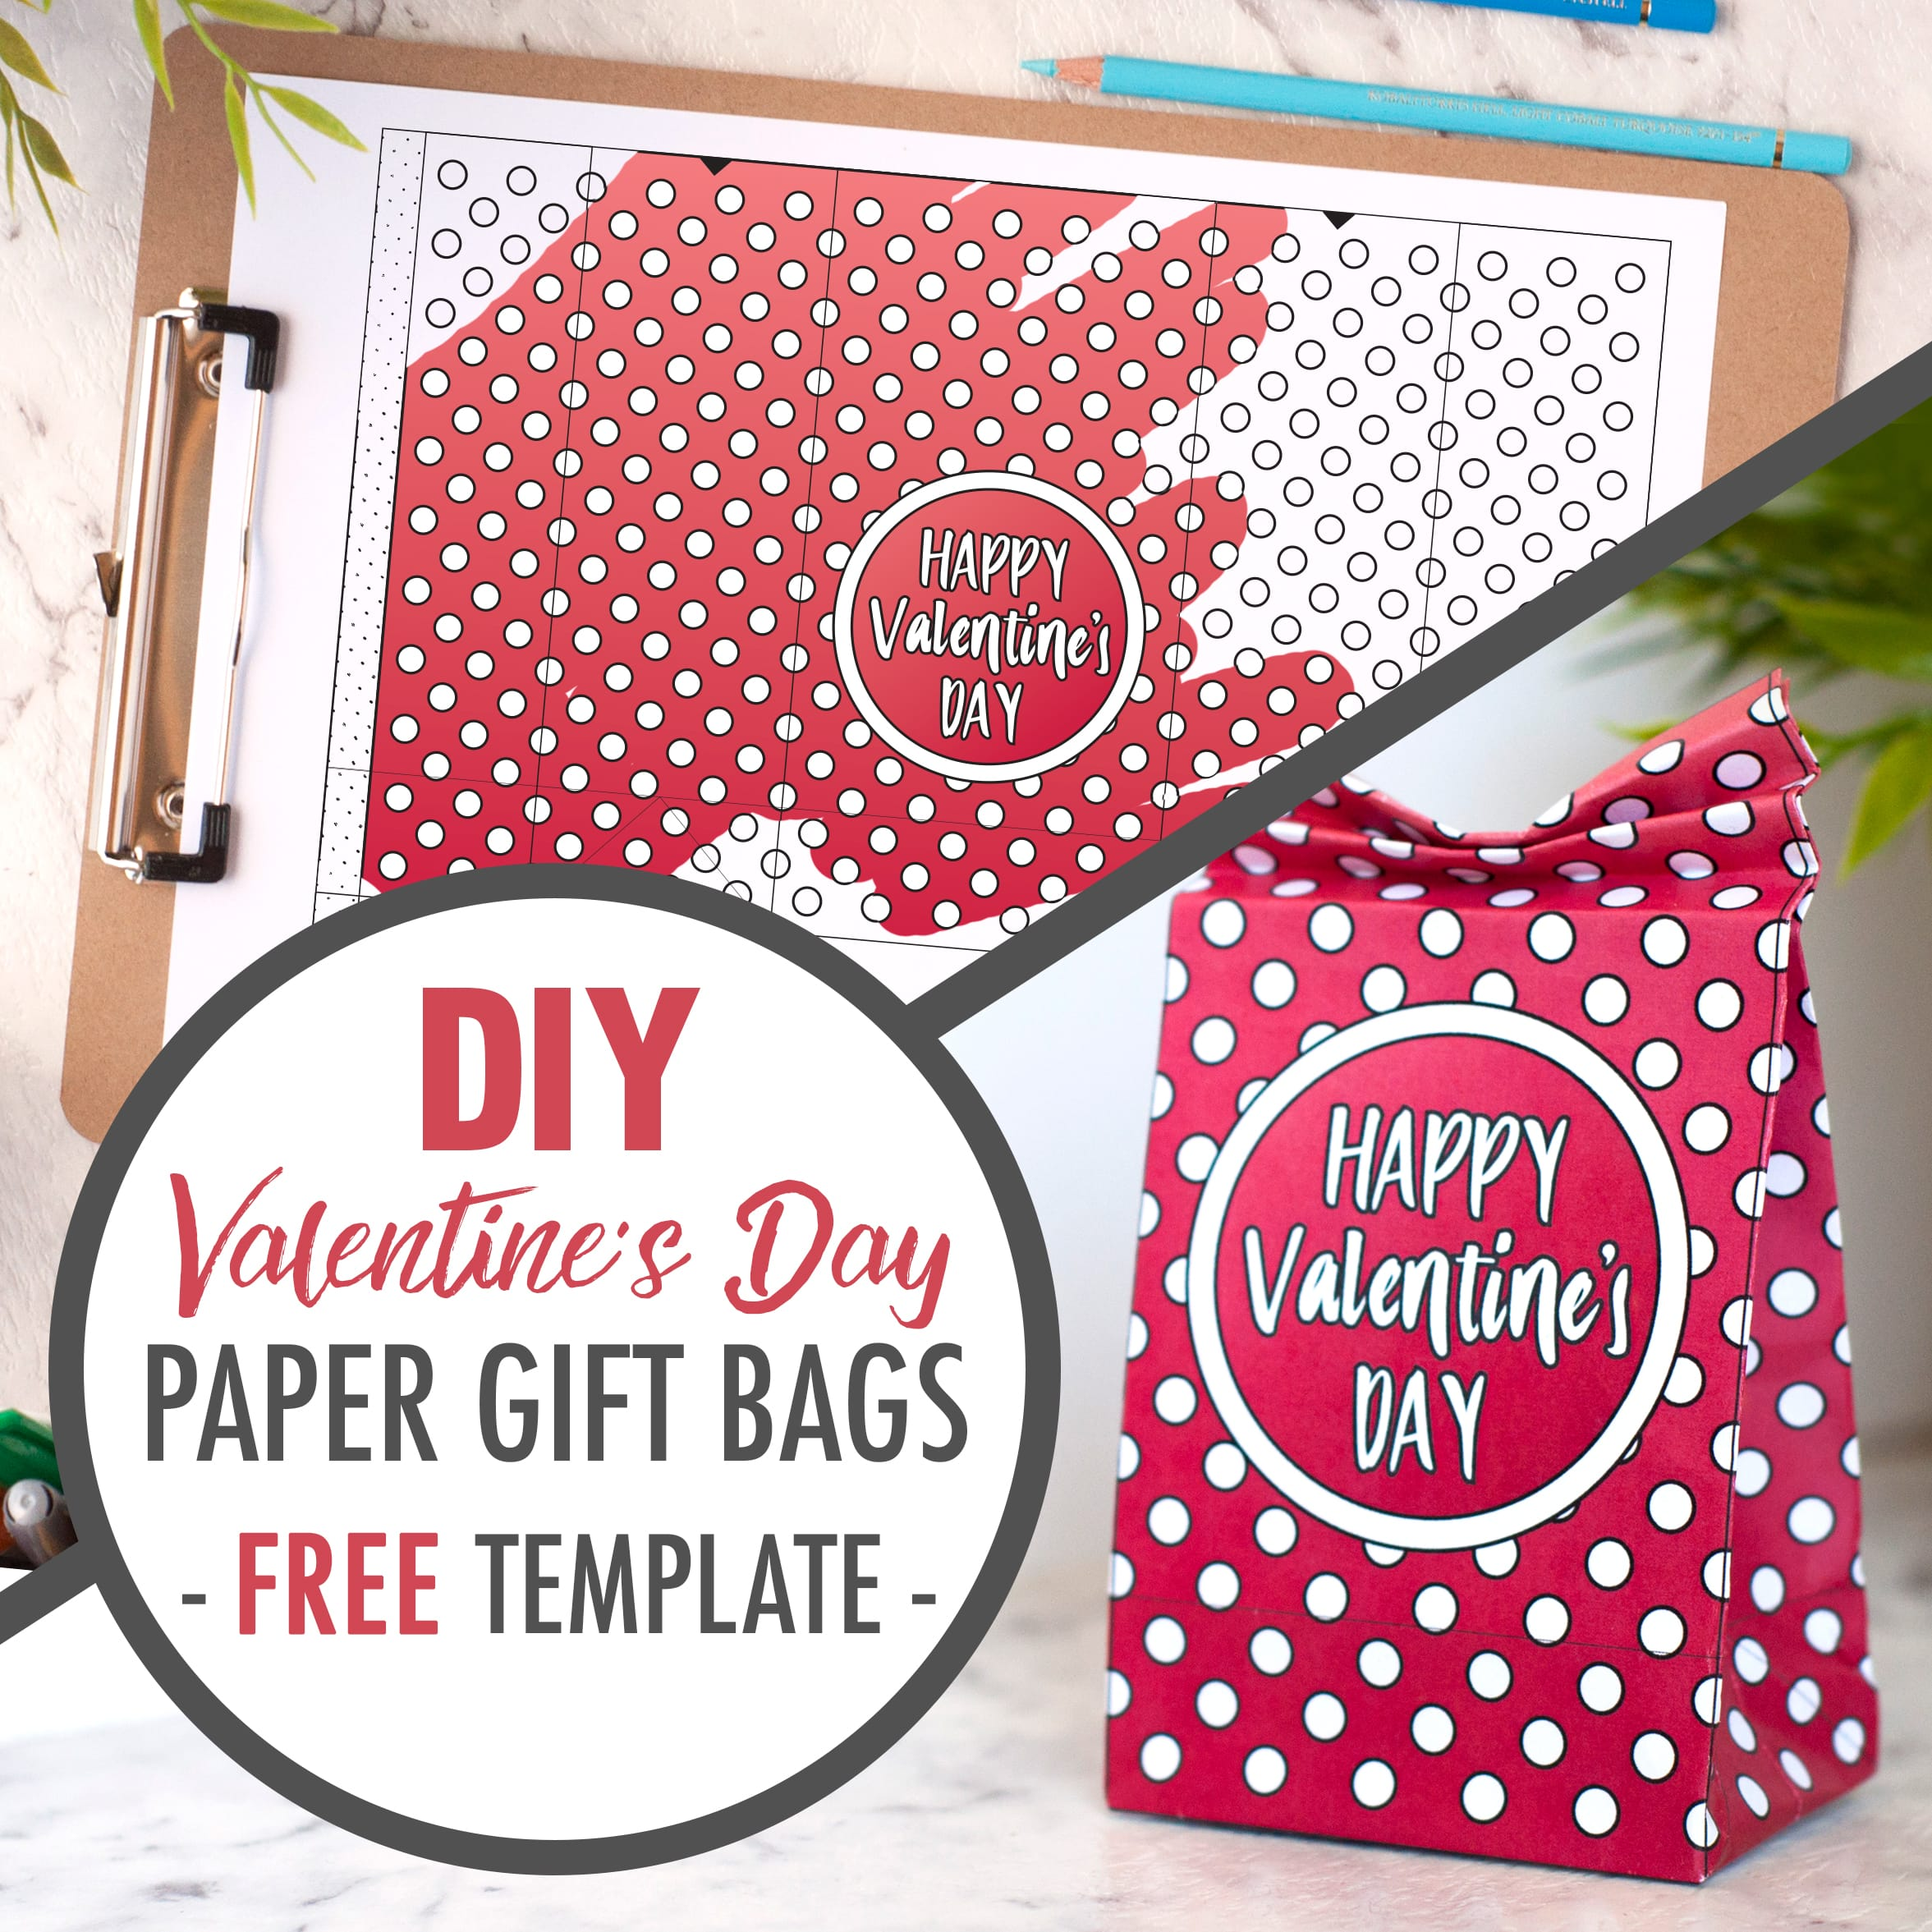 DIY Valentine's Day Paper Gift Bags | Free Template and Tutorial | Learn how to make your own cute coloring page paper gift bags - what a great gift idea for Valentine's Day! Watch the video instructions and download your free printable template at www.sarahrenaeclark.com| Valentine's Day Craft, DIY Valentine's Day, DIY paper gift bag, DIY gift bag, Valentine's Day activity, DIY craft, free craft template, DIY gift bag tutorial, video tutorial, free template, free coloring page, free Valentine's Day coloring pages, free printable, printable template